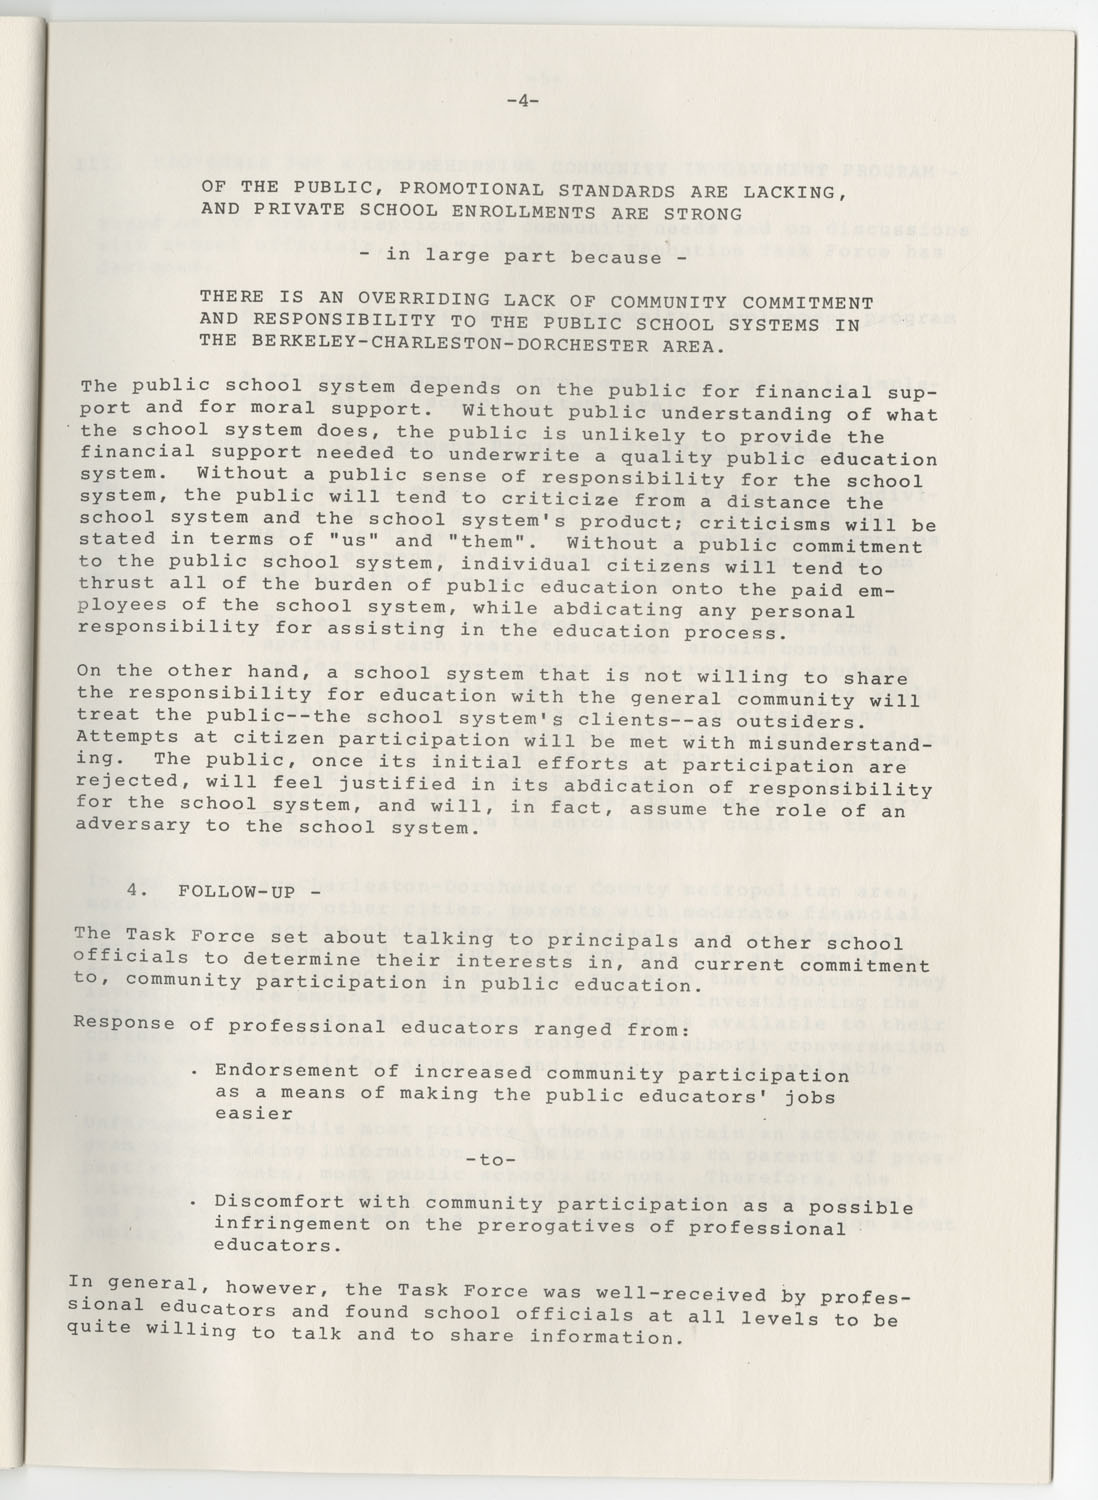 Trident 2000 Task Force Reports on Education, June 1978, Page 4